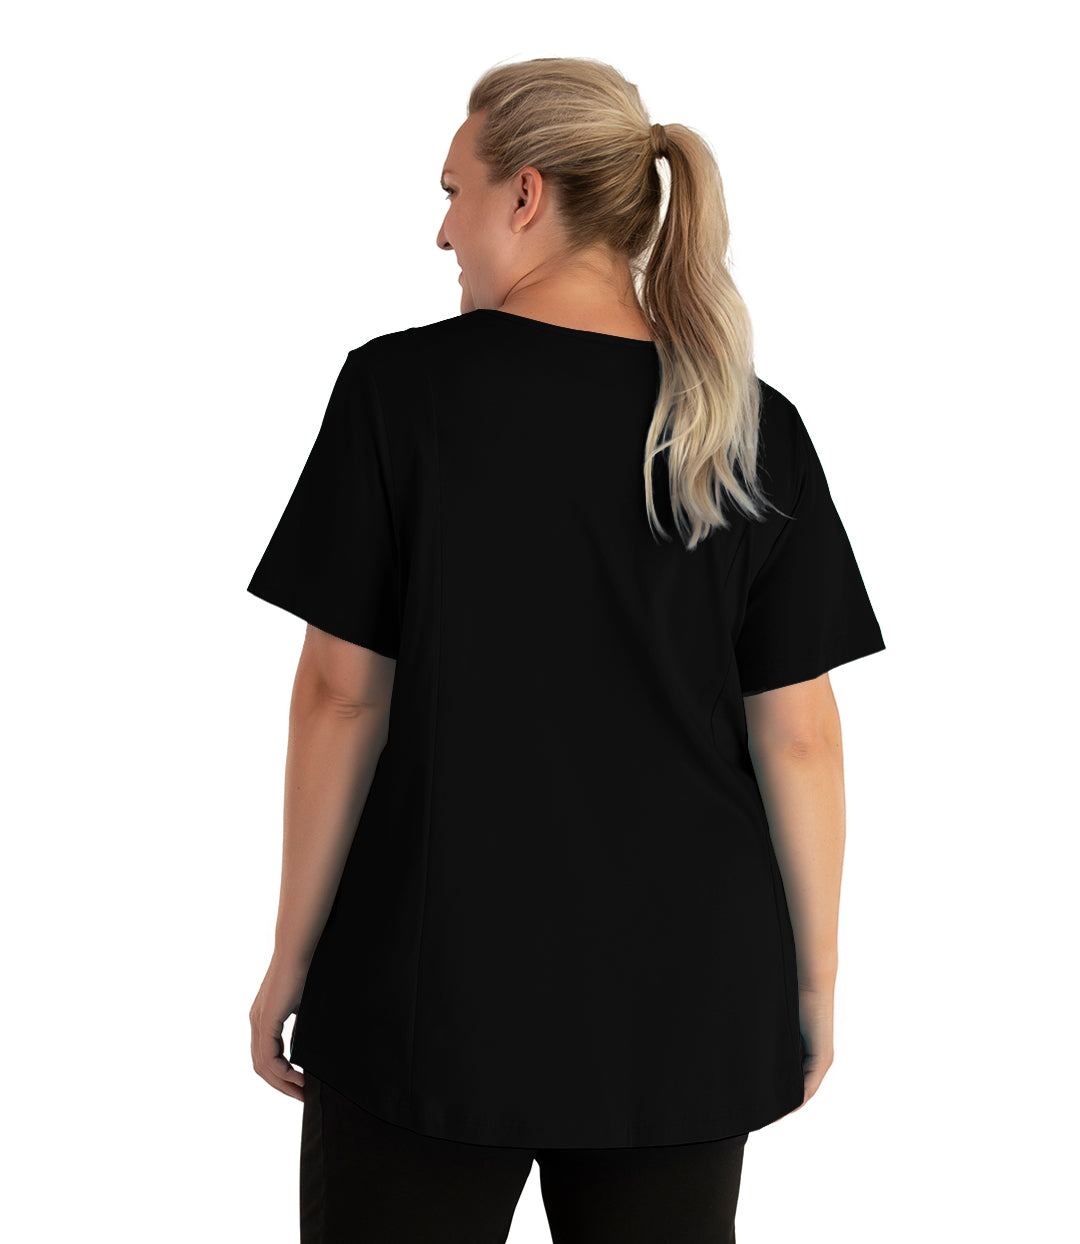 Stretch Naturals Lite V-neck Short Sleeve Princess Top Basic Colors-Tops Short Sleeve Tunic-Hop Wo Trading Co Ltd-XL-Black-JunoActive